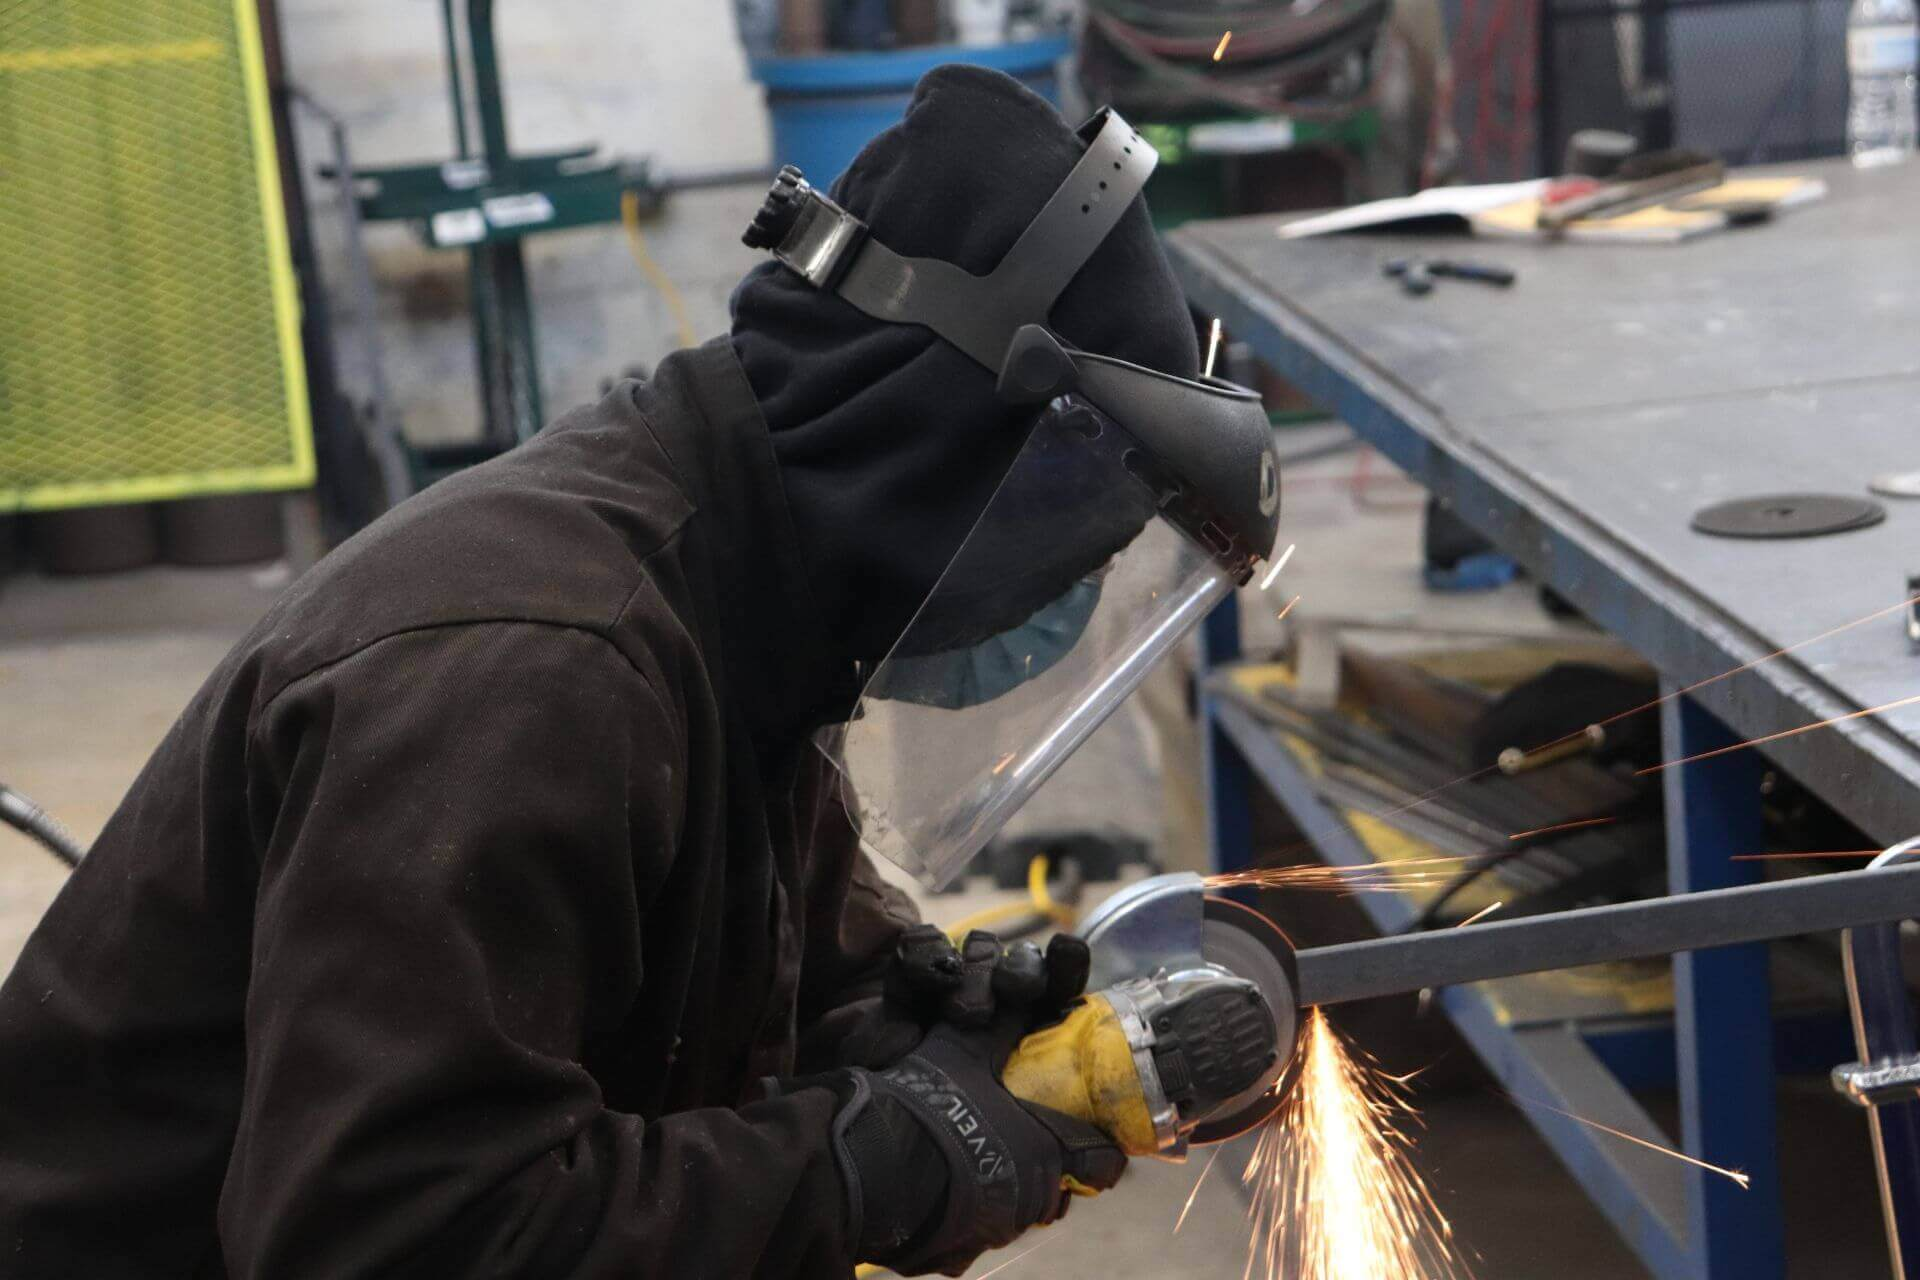 What Is A Journeyman Pipefitter?